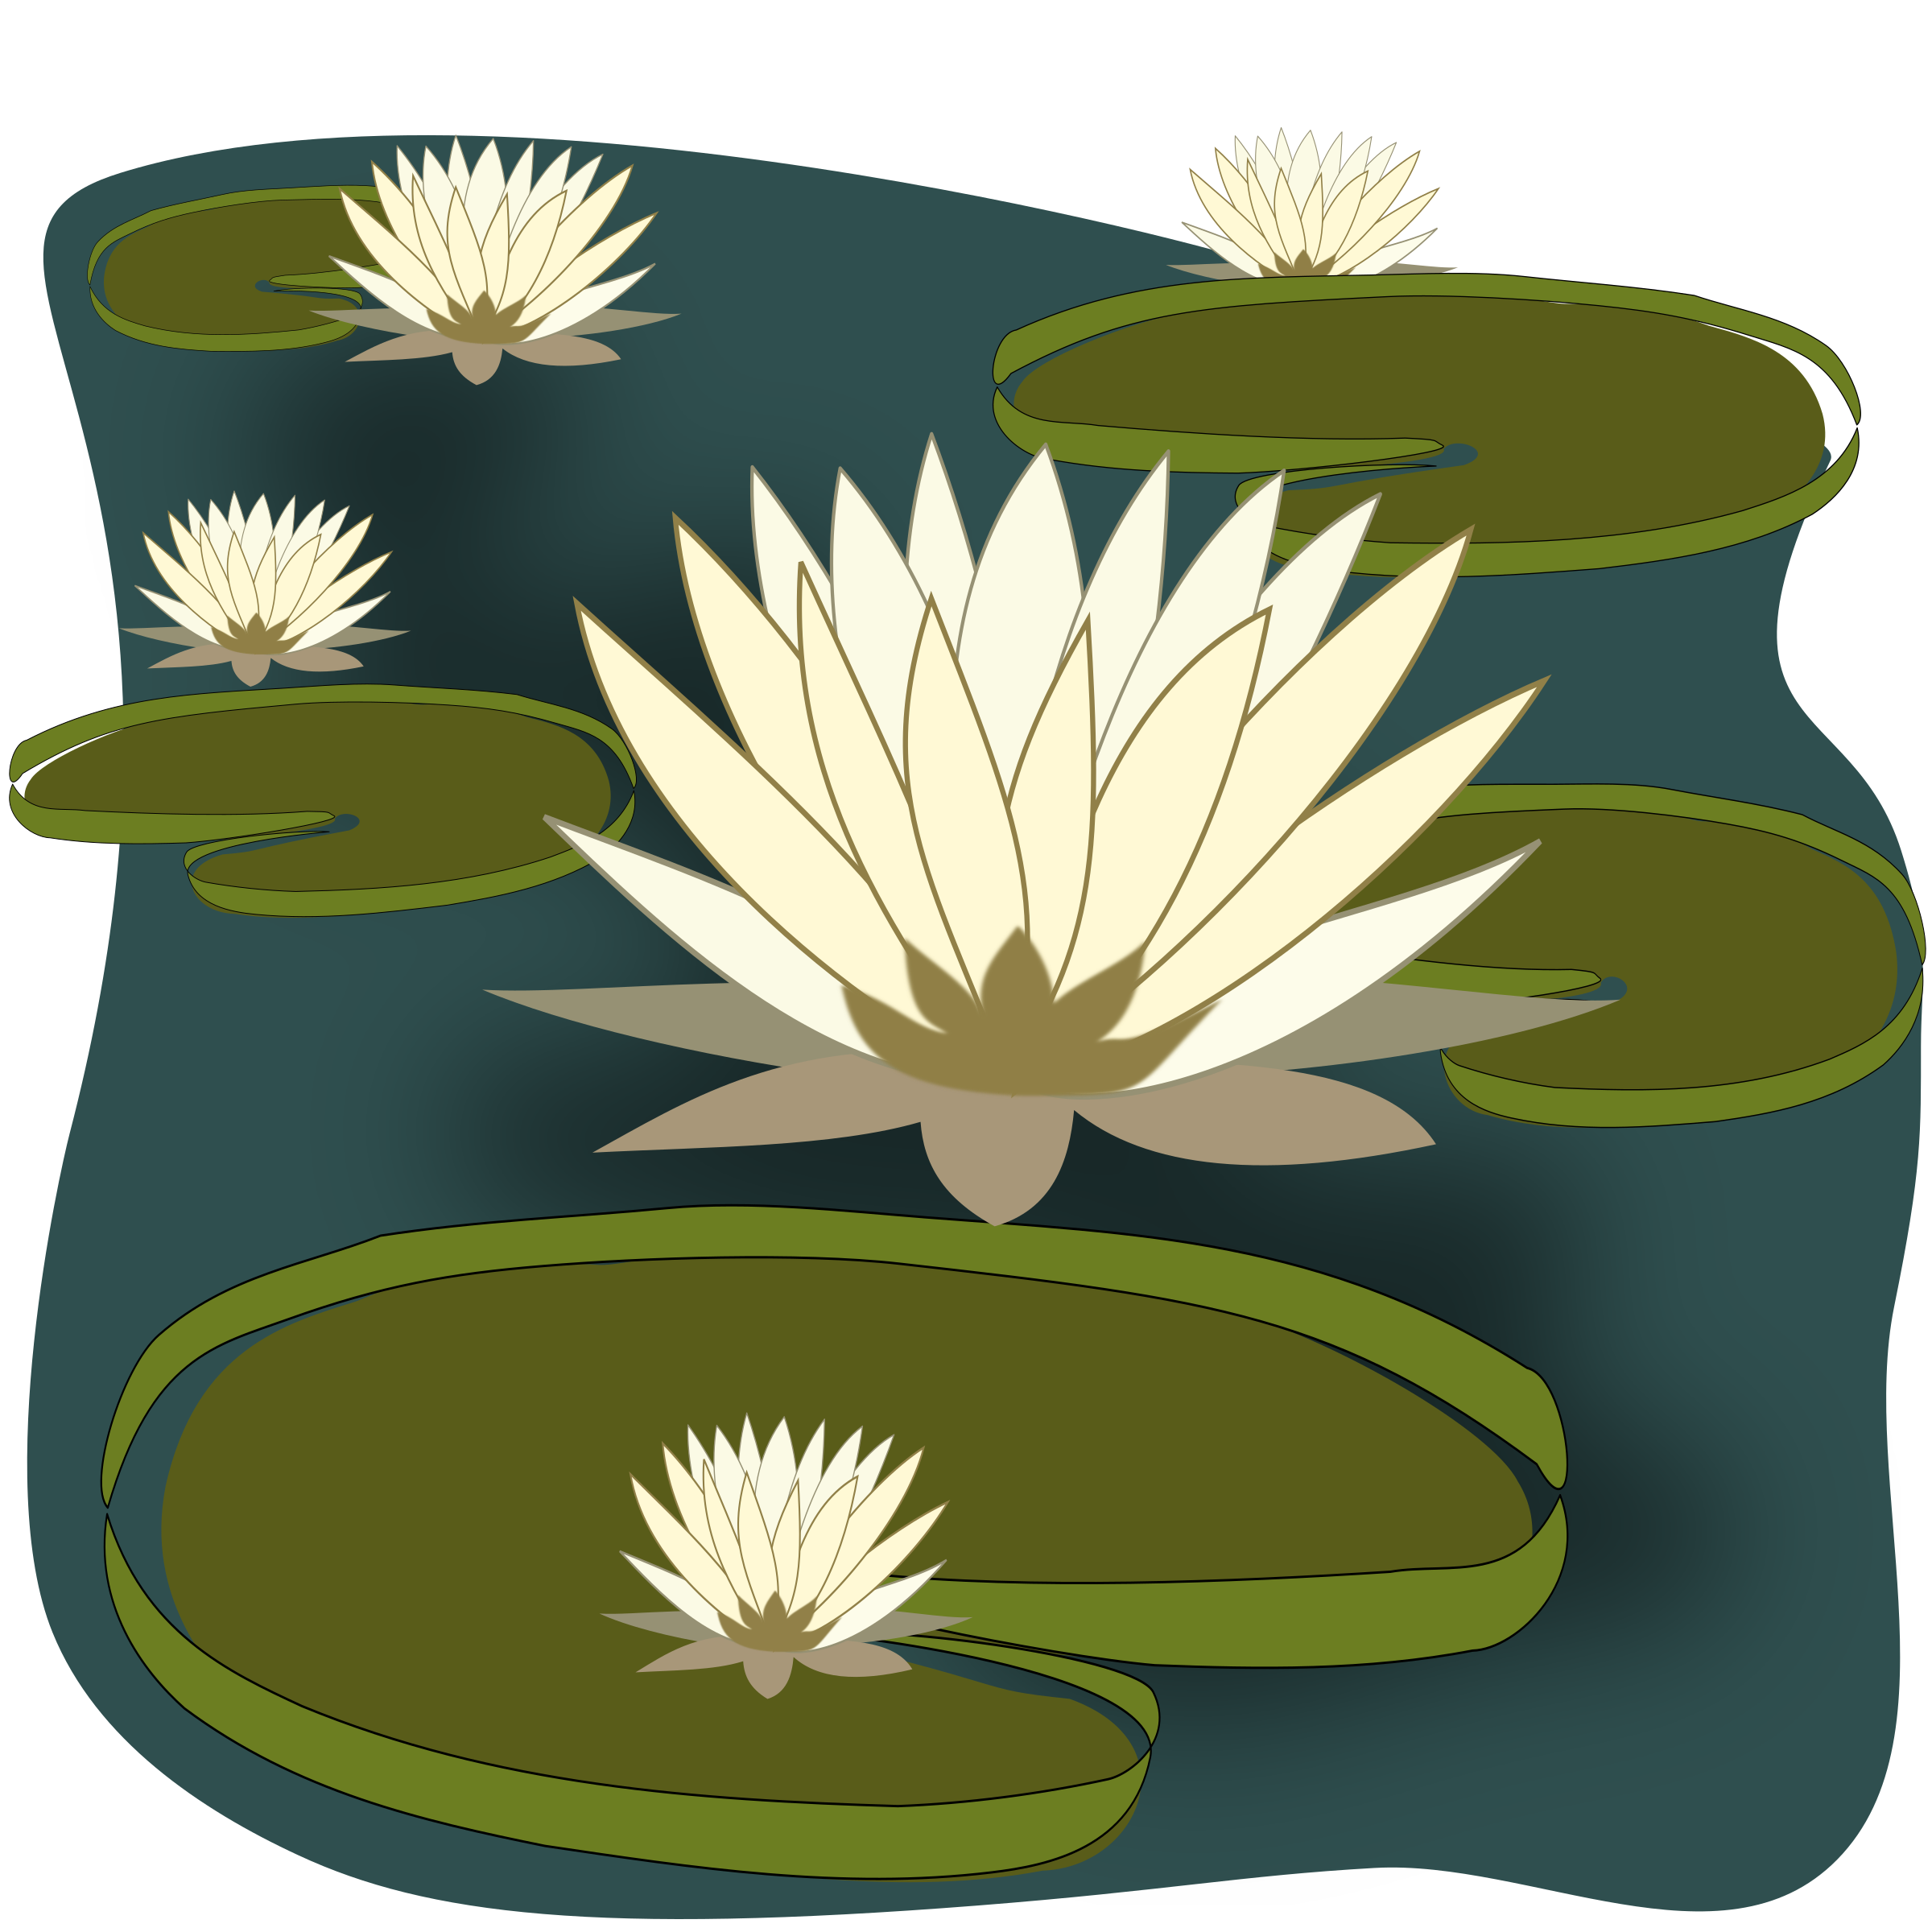 Fish pound clipart jpg freeuse download Water Lily Pond Clipart & Water Lily Pond Clip Art Images #2267 ... jpg freeuse download